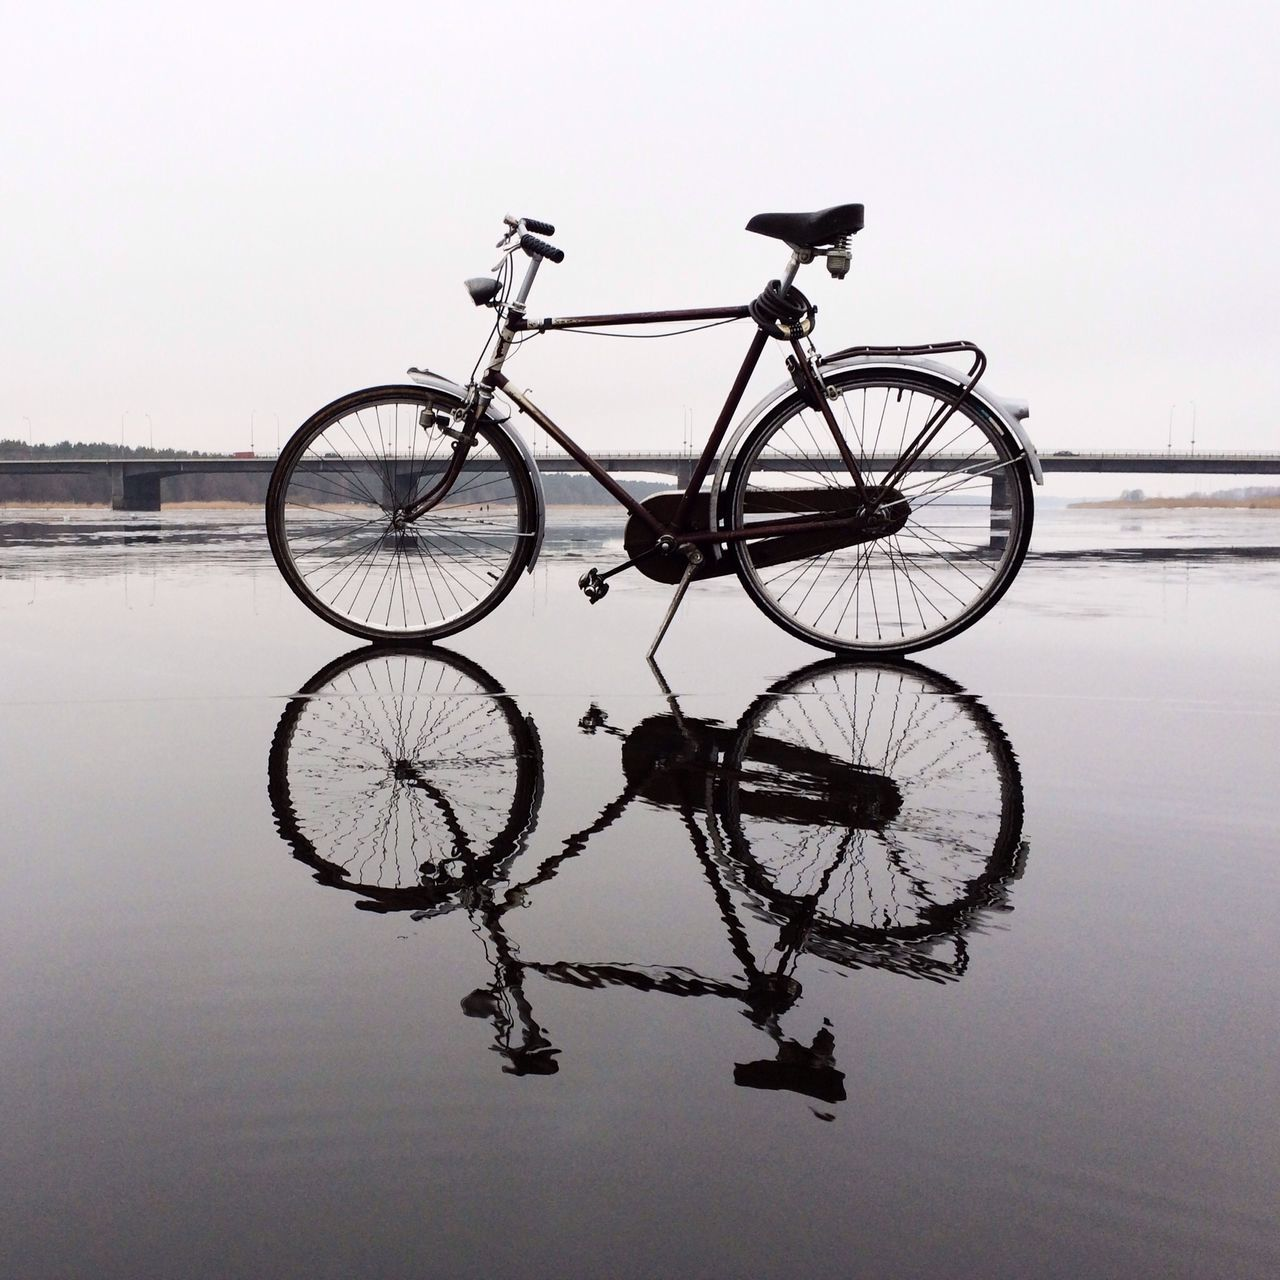 Bike reflected on water